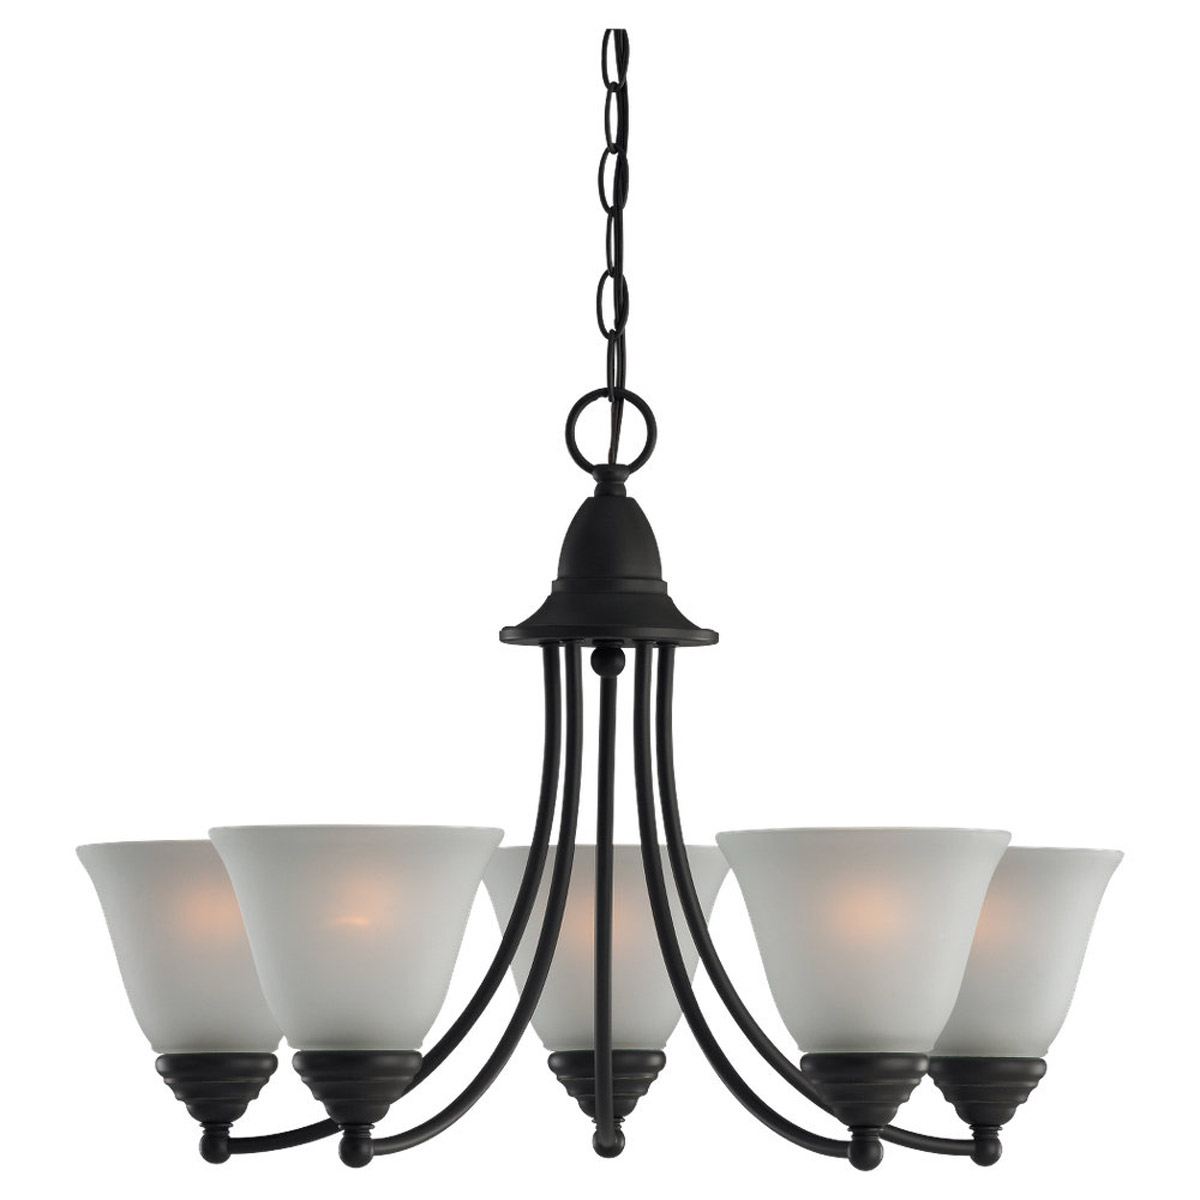 Sea Gull Lighting Albany 5 Light Chandelier in Heirloom Bronze 31576-782 photo